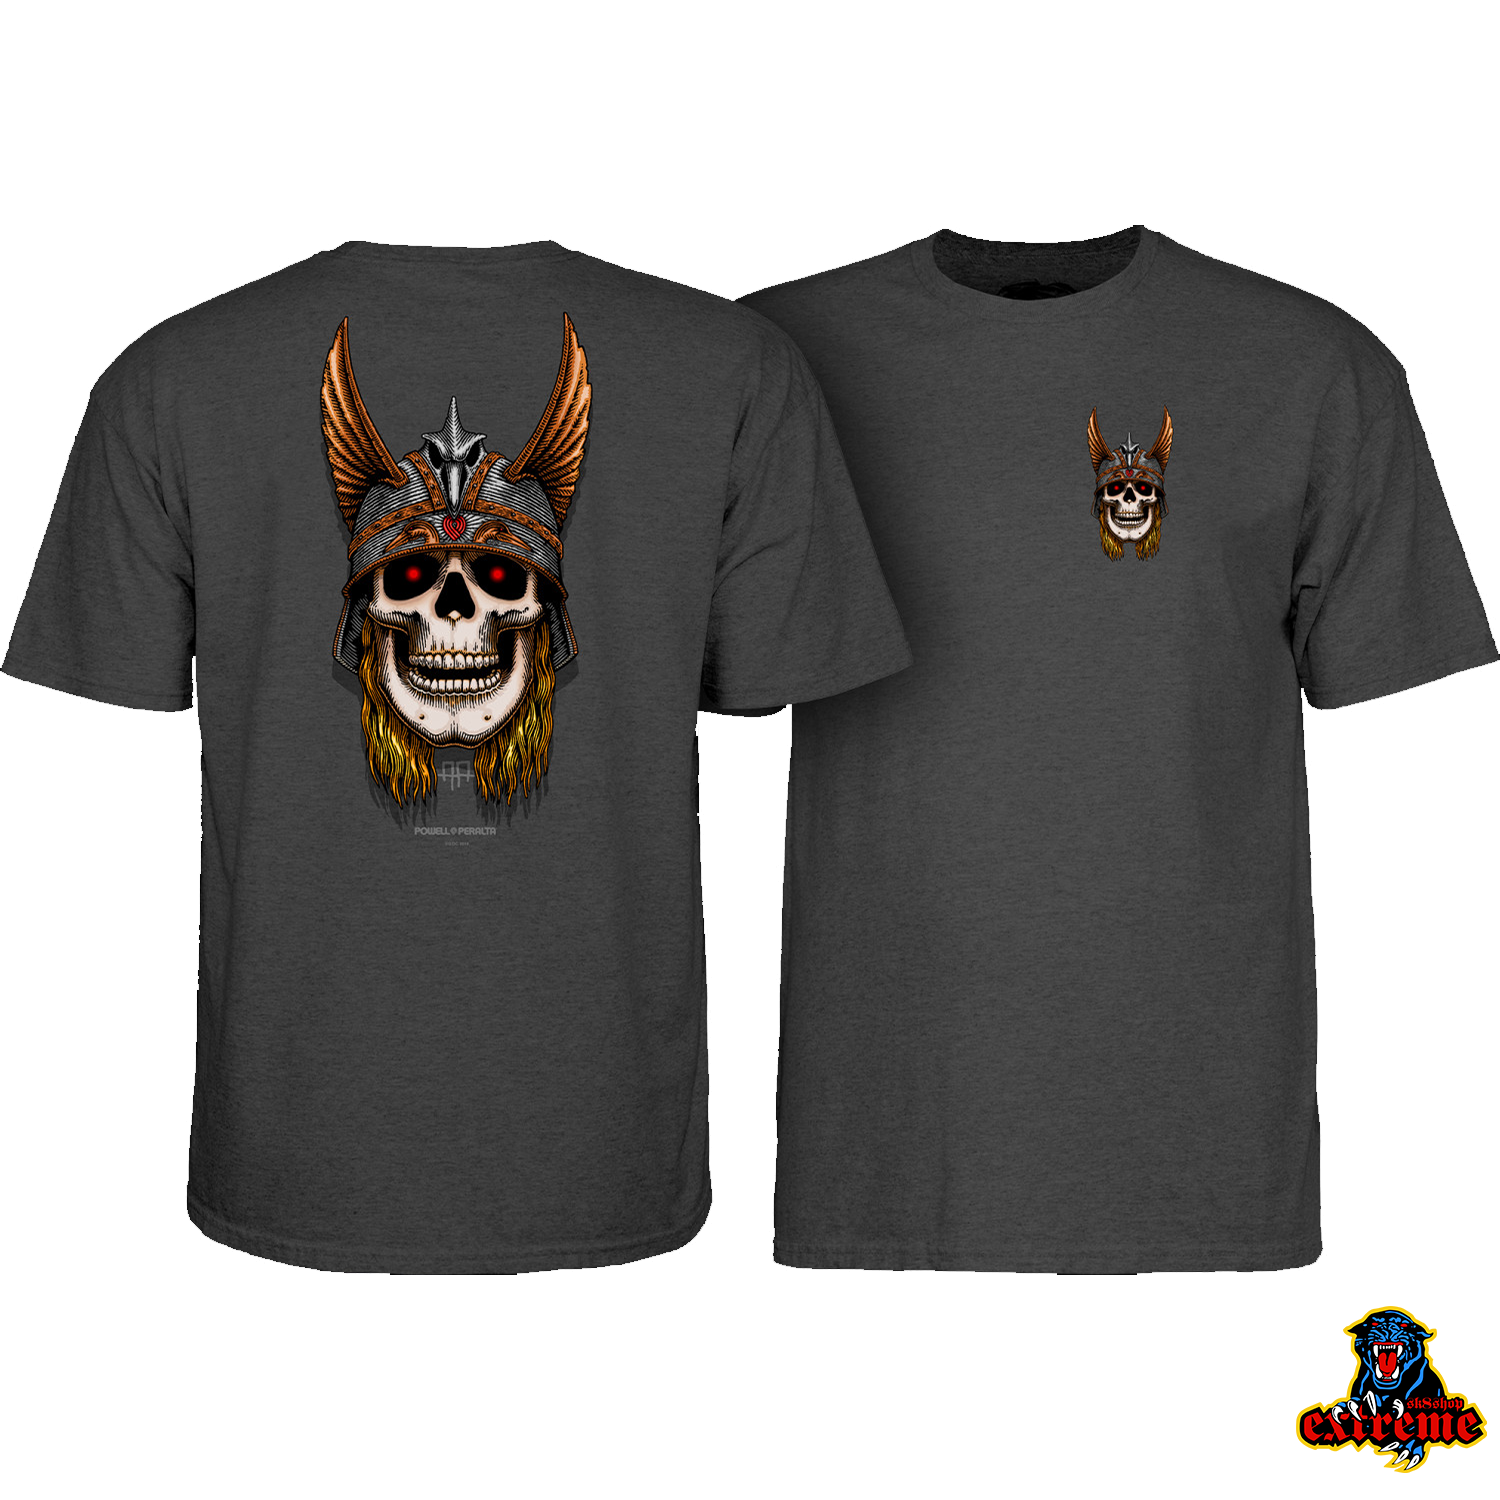 POWELL PERALTA T-SHIRT ANDY ANDERSON SKULL Charcoal Heather